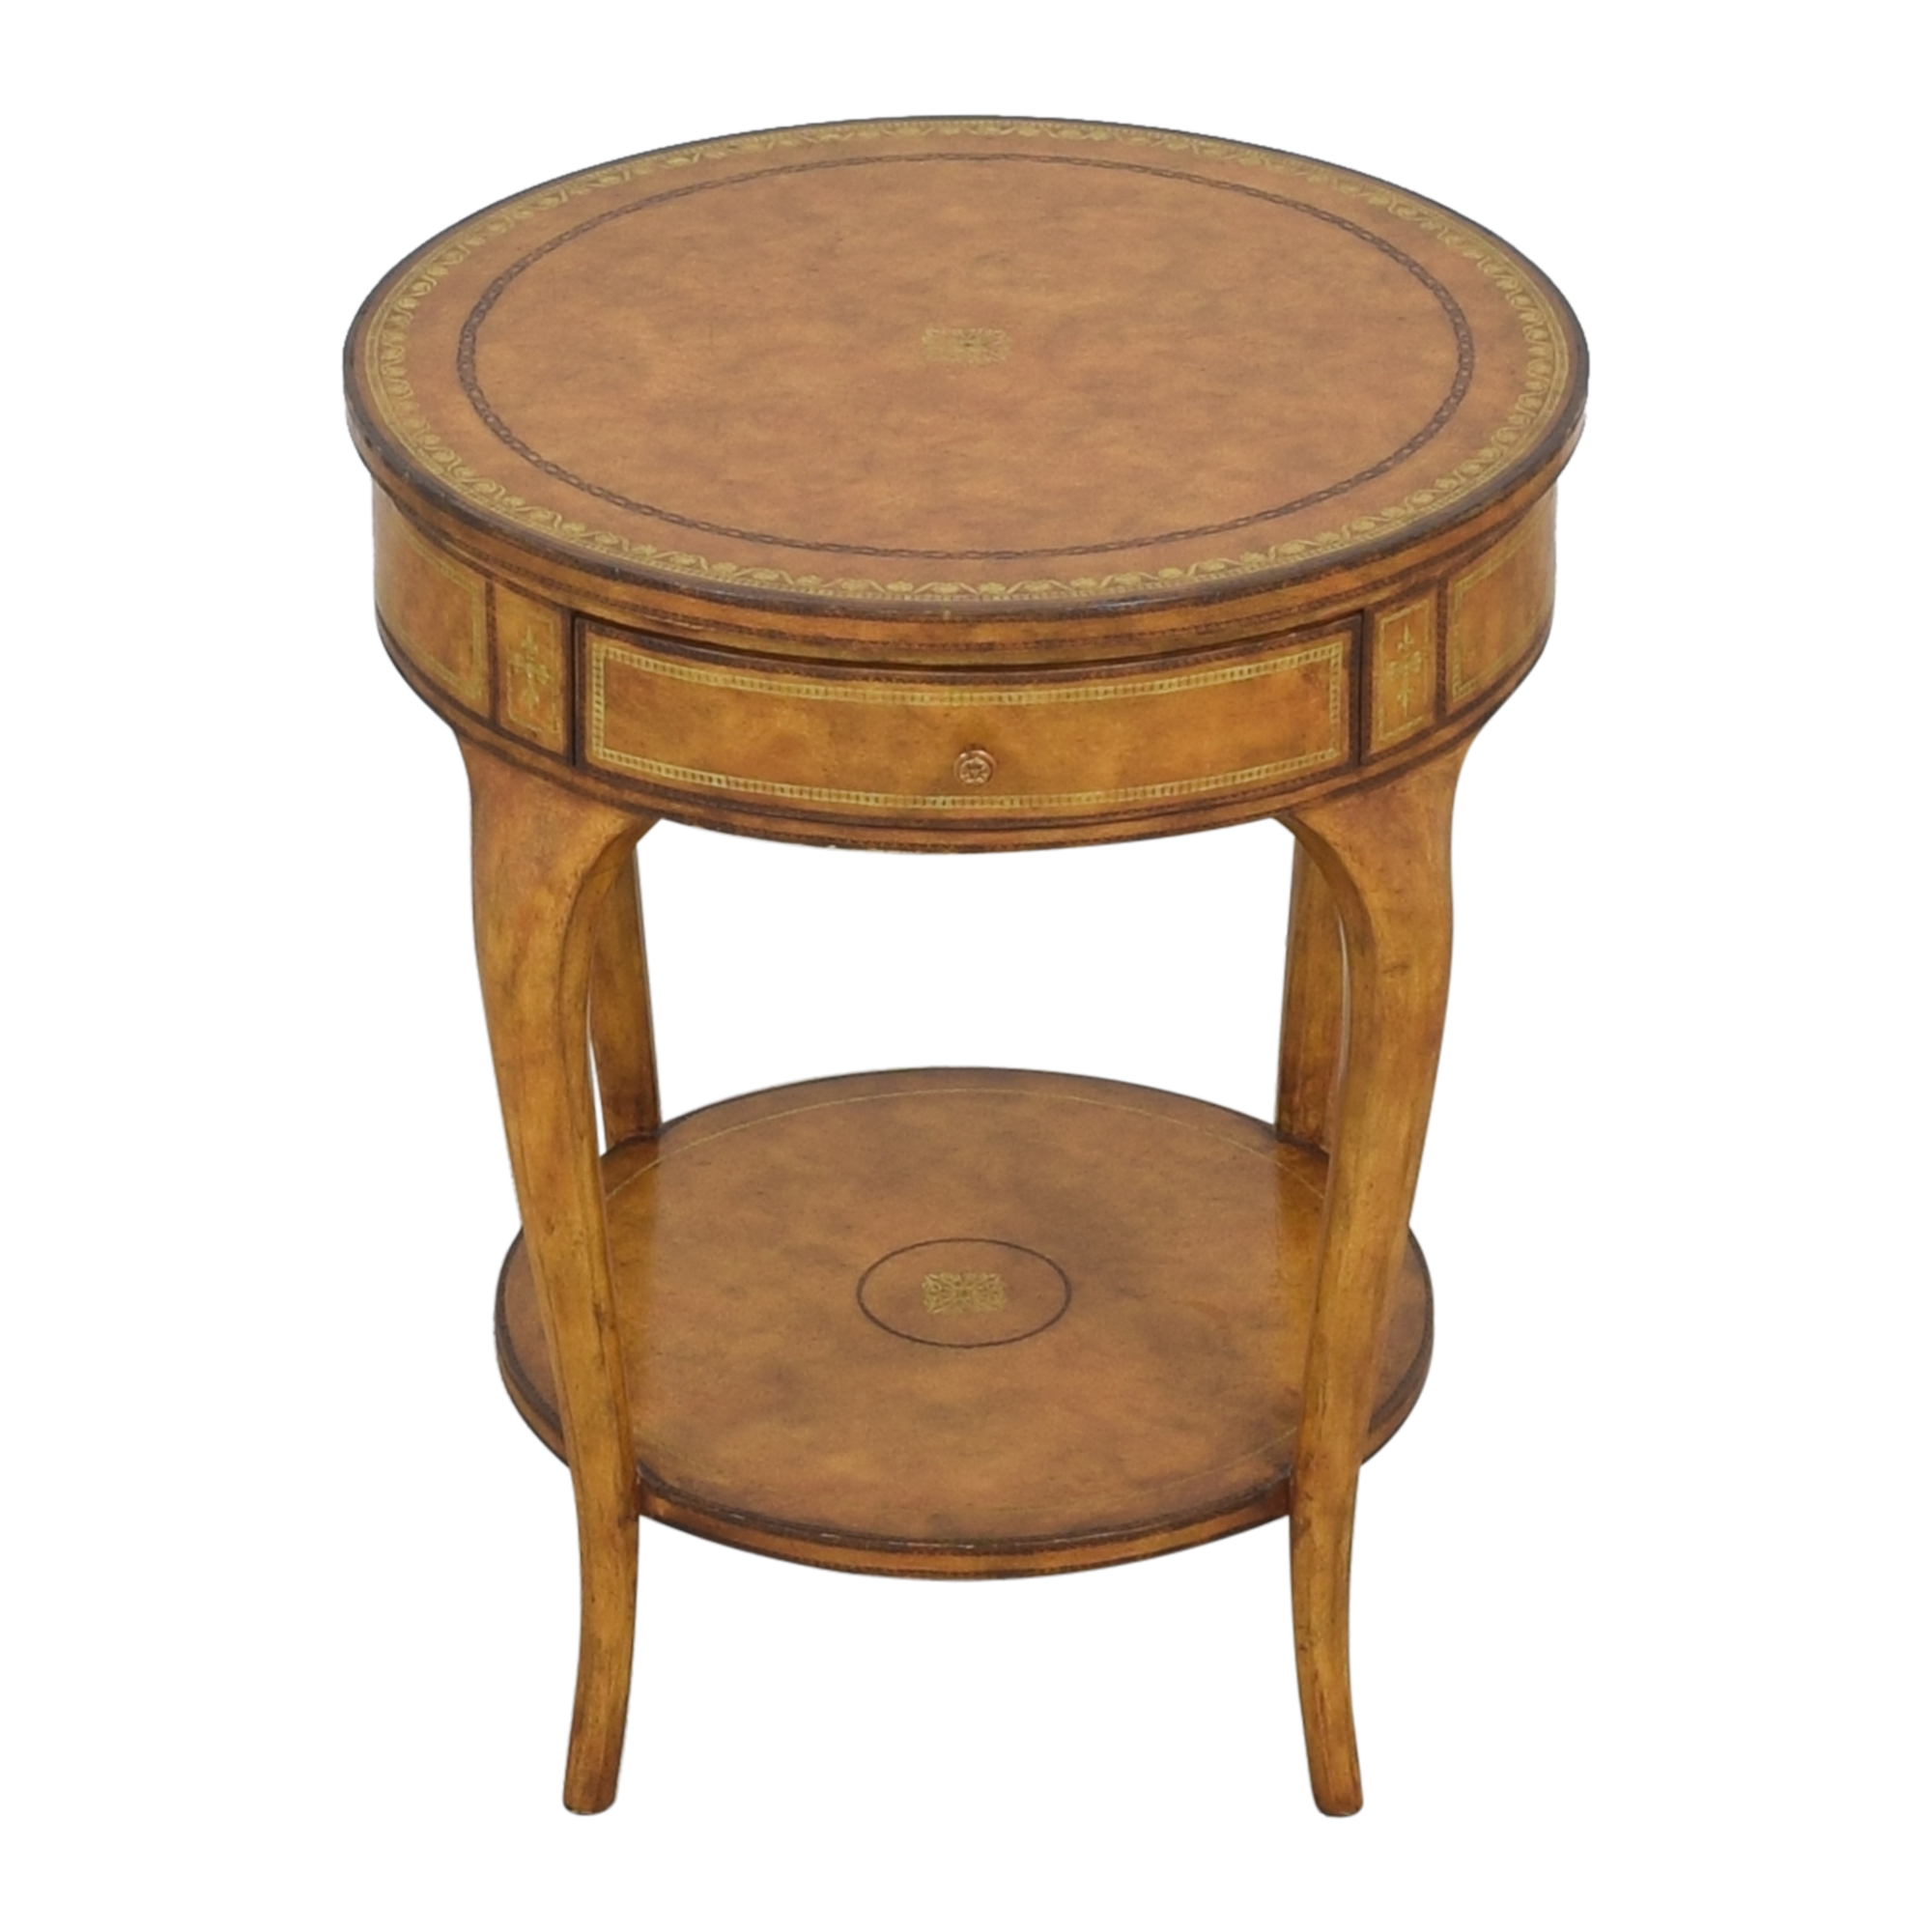 shop Maitland-Smith Maitland-Smith Round Accent Table online